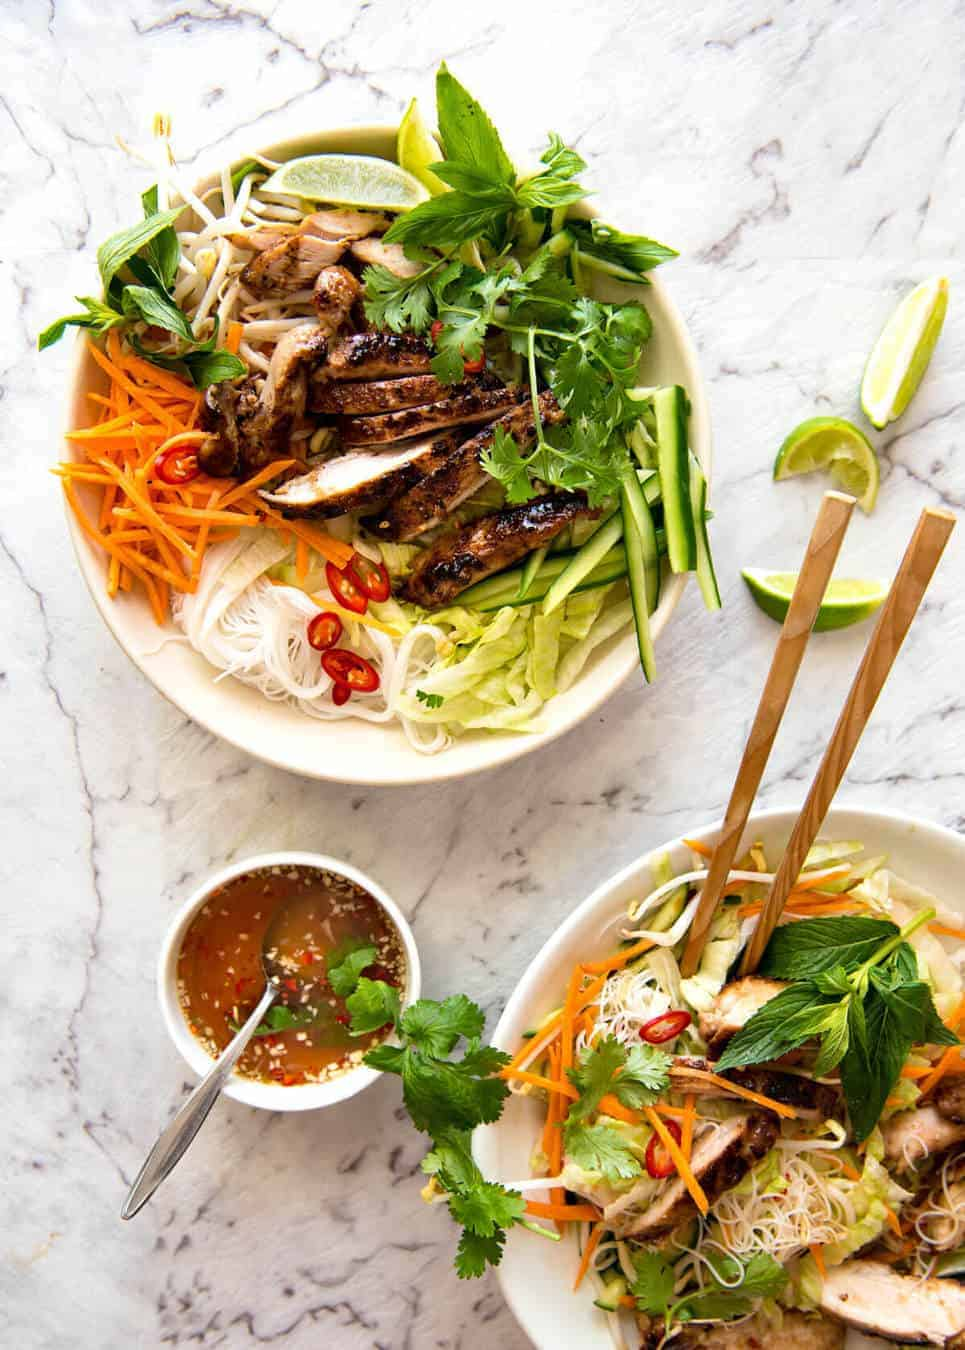 Vietnamese noodles with lemongrass chicken recipetin eats vietnamese noodles with lemongrass chicken bun ga nuong the popular vietnamese dish made forumfinder Choice Image